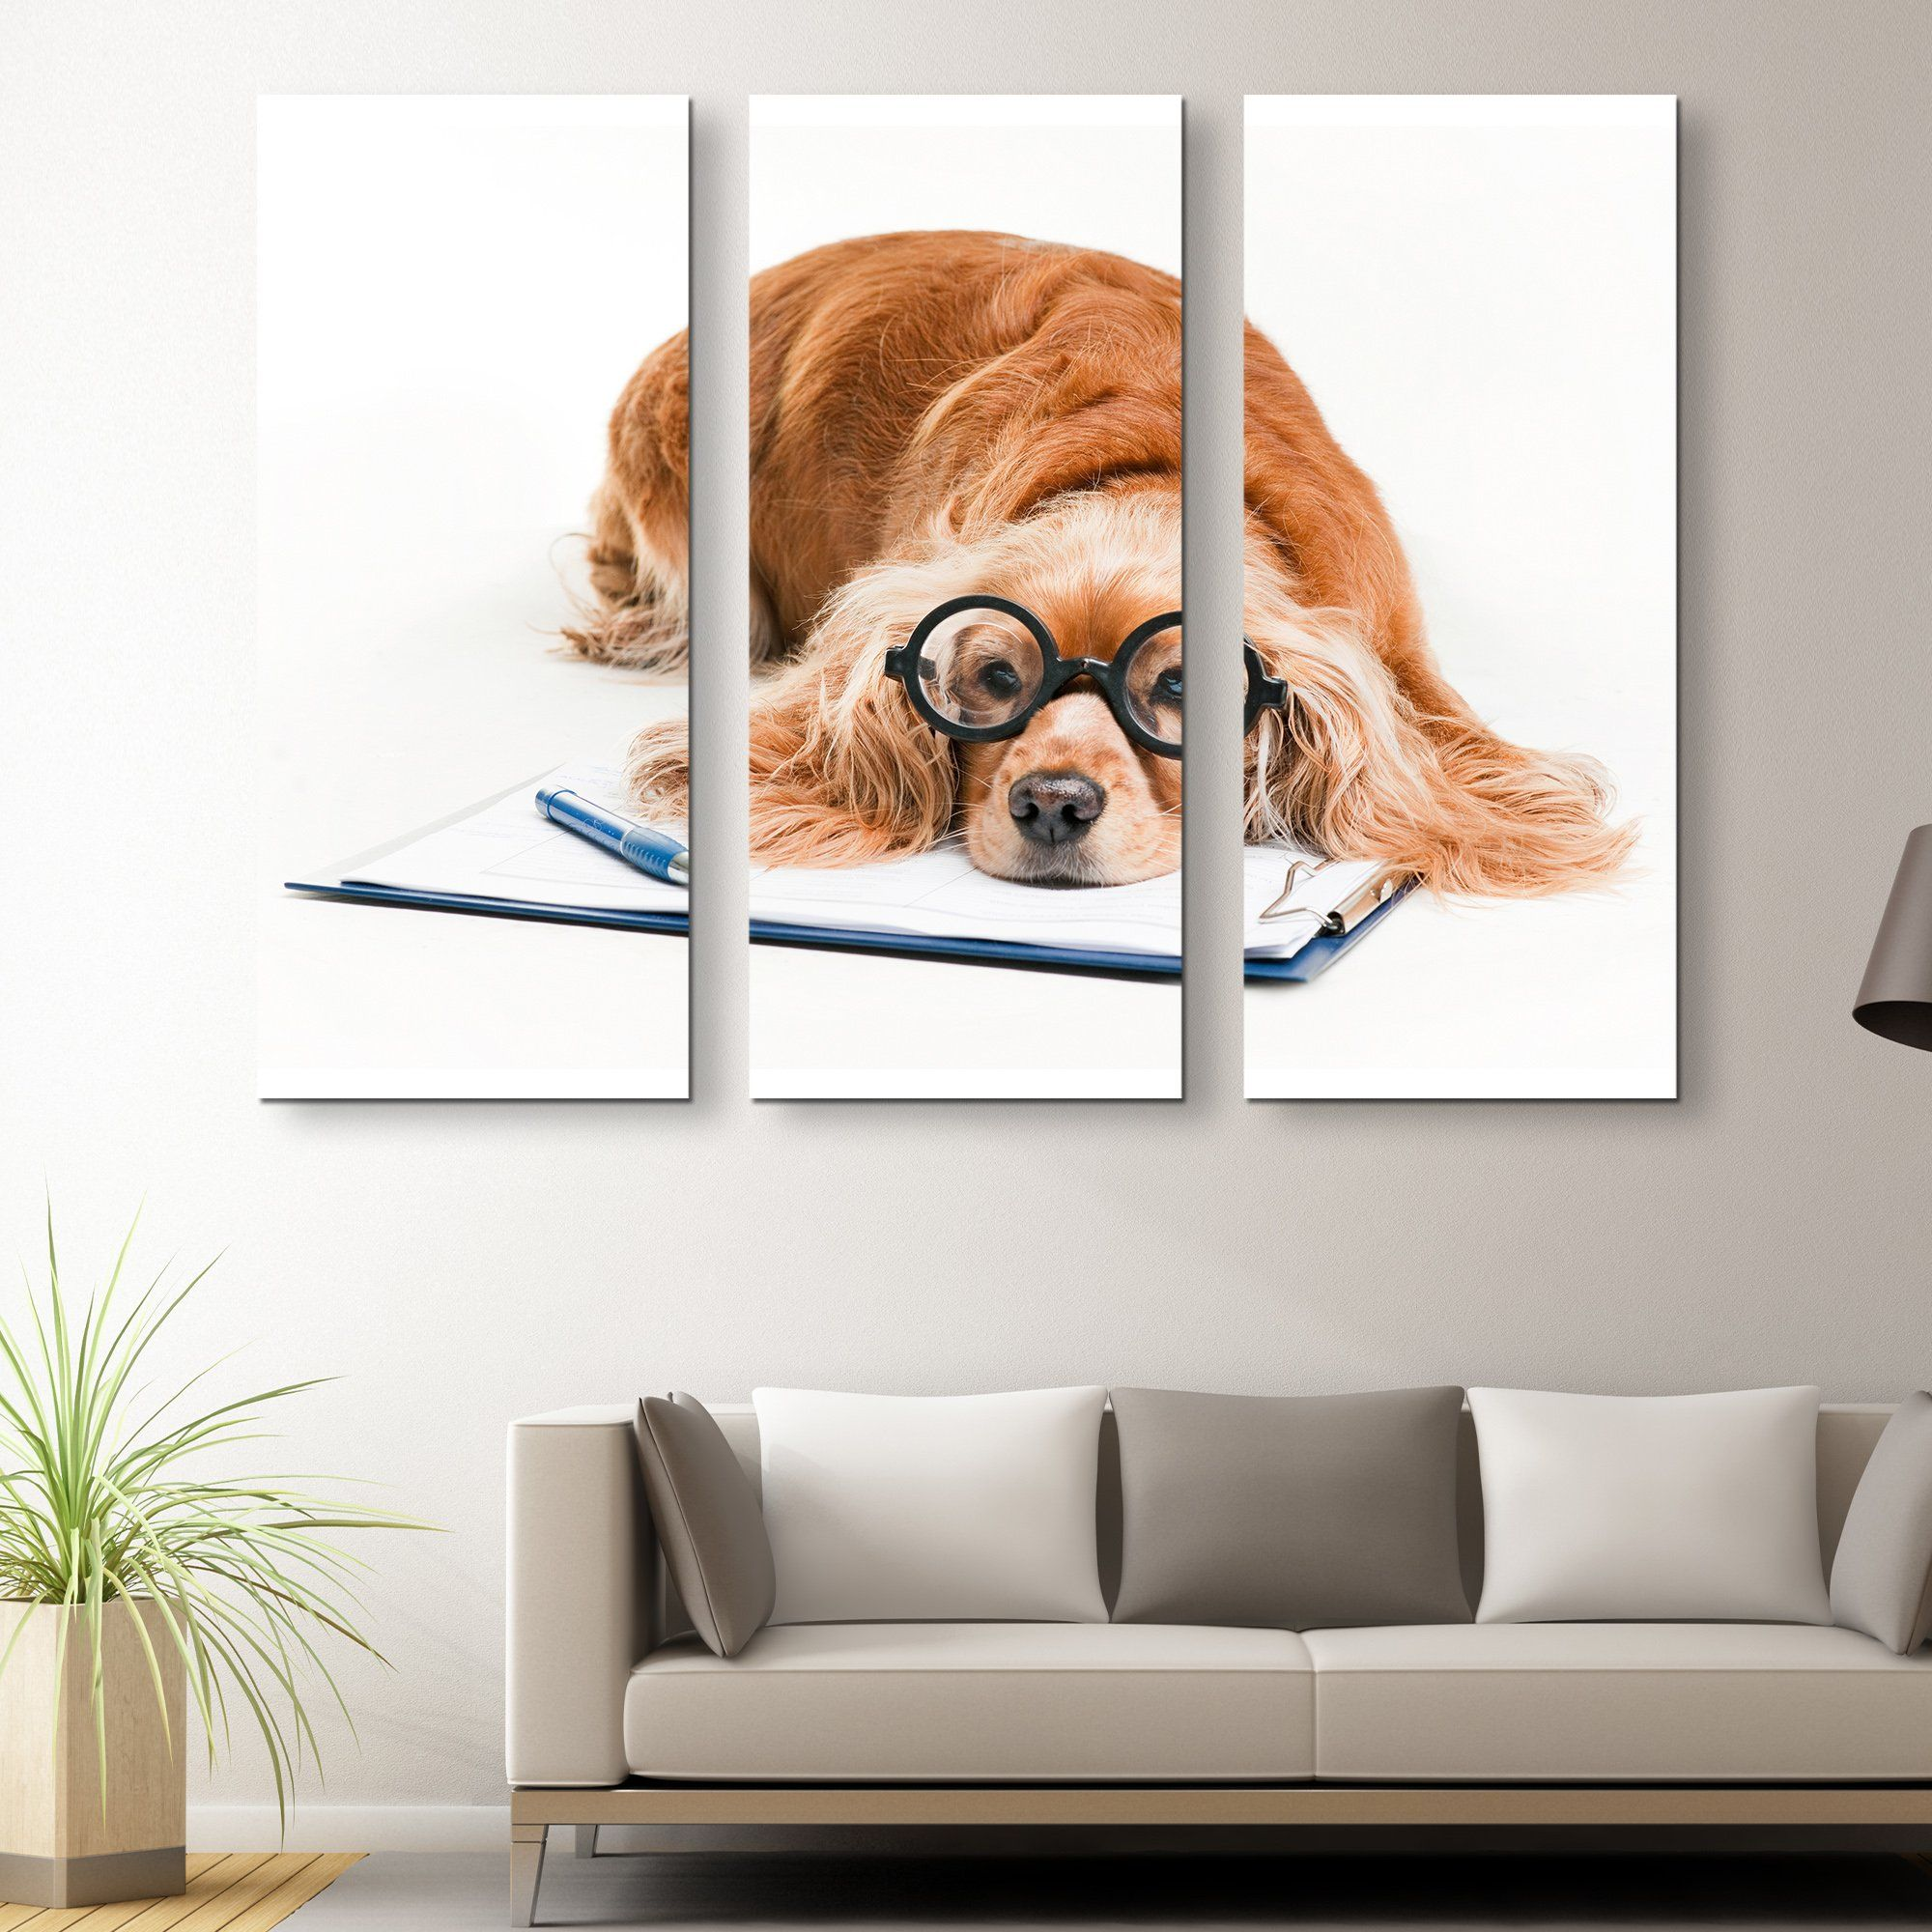 3 piece Cocker Spaniel wall art